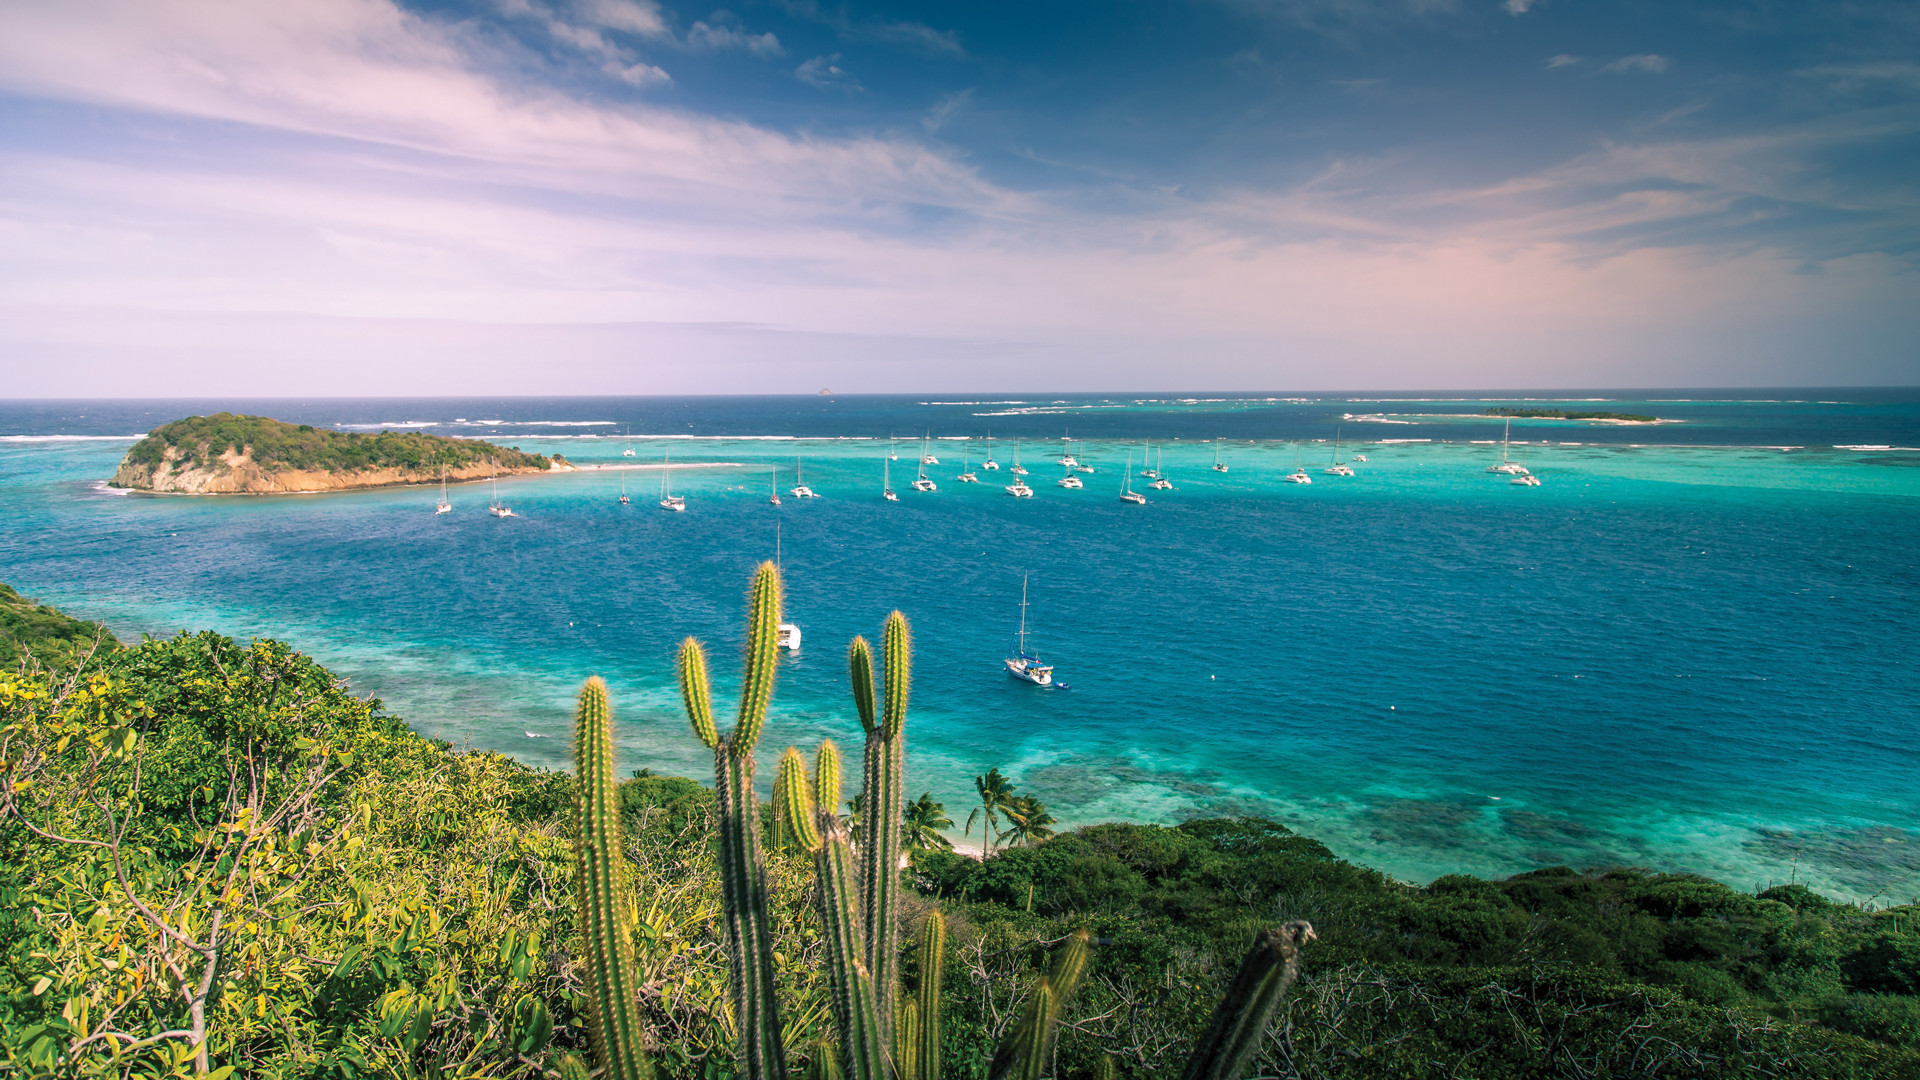 Blue seas and cactus in St Vincent & the Grenadines